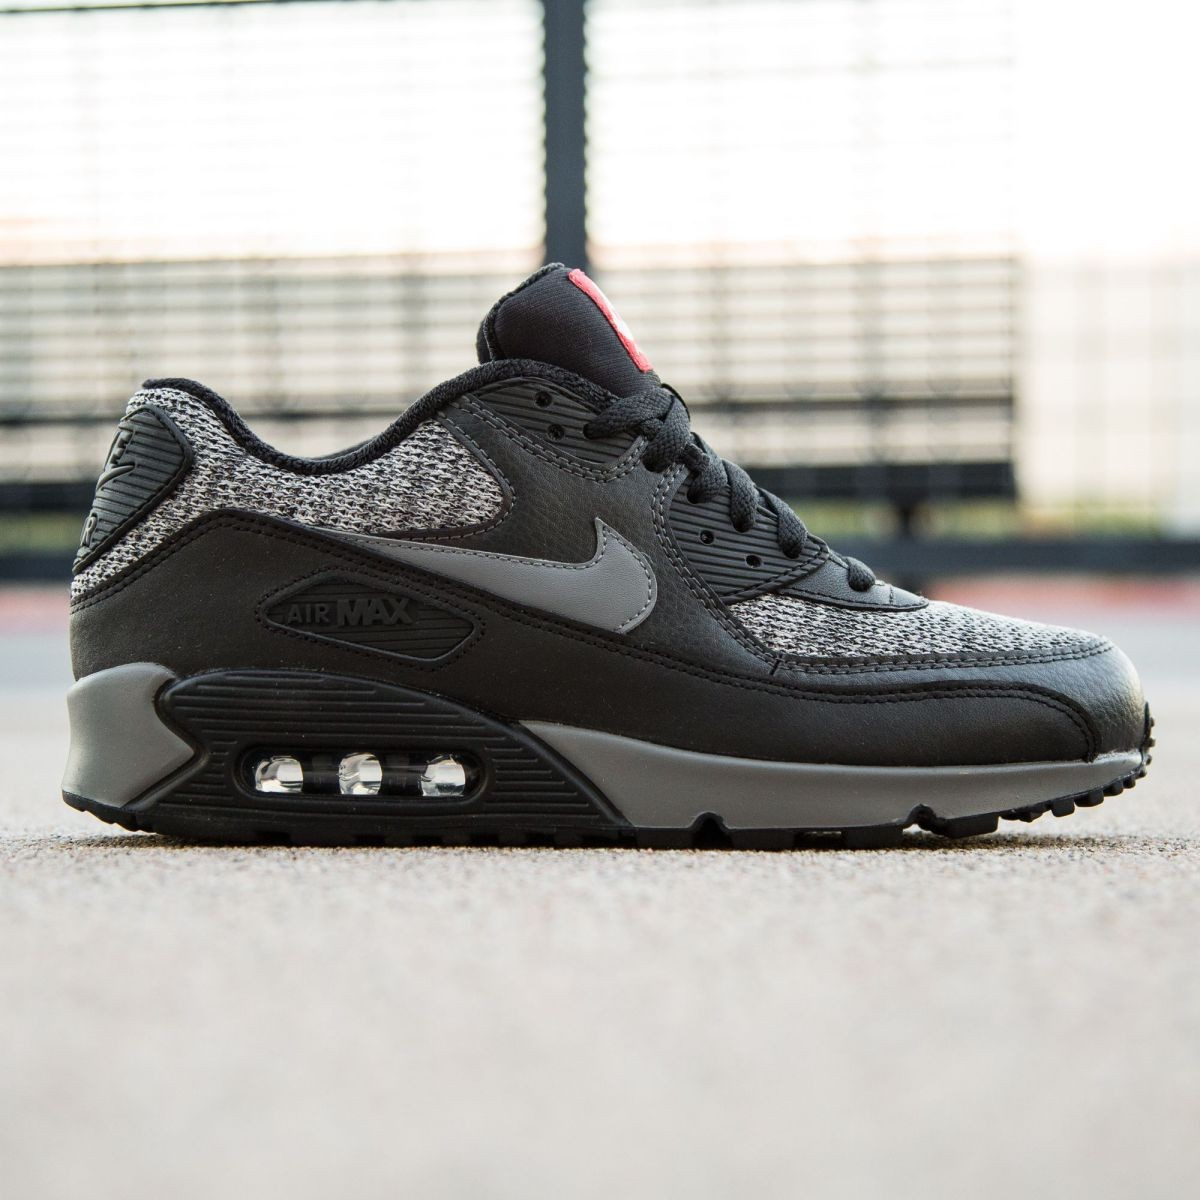 timeless design 49a12 758e8 Nike Men Air Max 90 Essential black cool grey anthracite university red